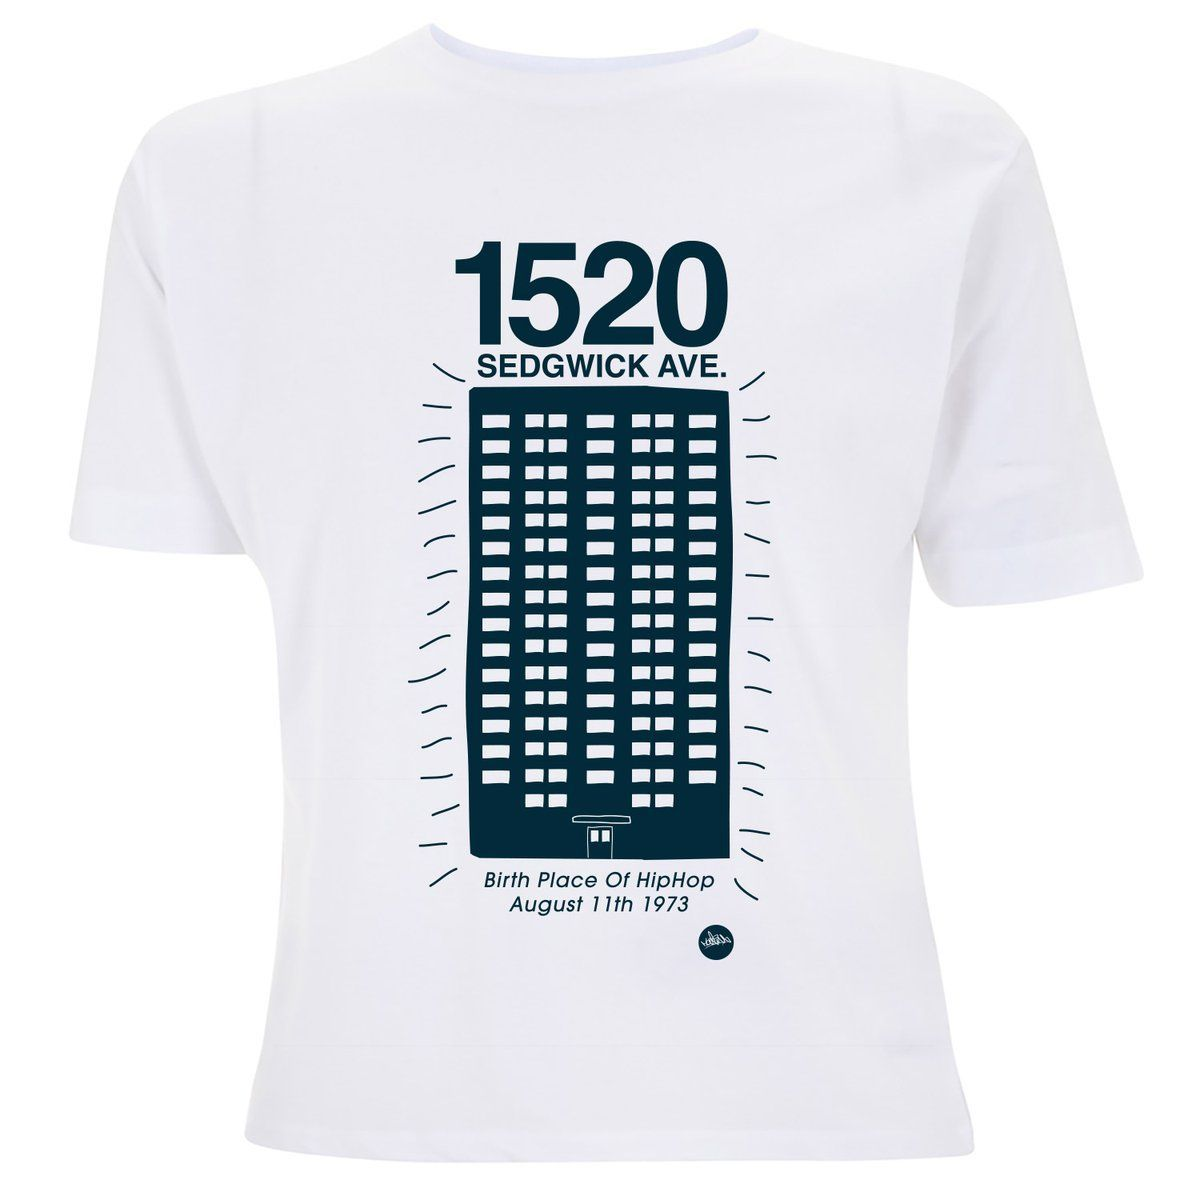 Celebrating the birthplace of #HipHop This classic is back in 2 New Colourways... 1520 Sedgwick Ave Design >> Available to Preorder here >>  https://madina.co.uk/shop/latest/1520-sedgwick-ave-birthplace-of-hip-hop-t-shirt-white/… << #KoolHerc #Bronx #NewYork #Fashion #Clothing #Design #FridayFeeling RT